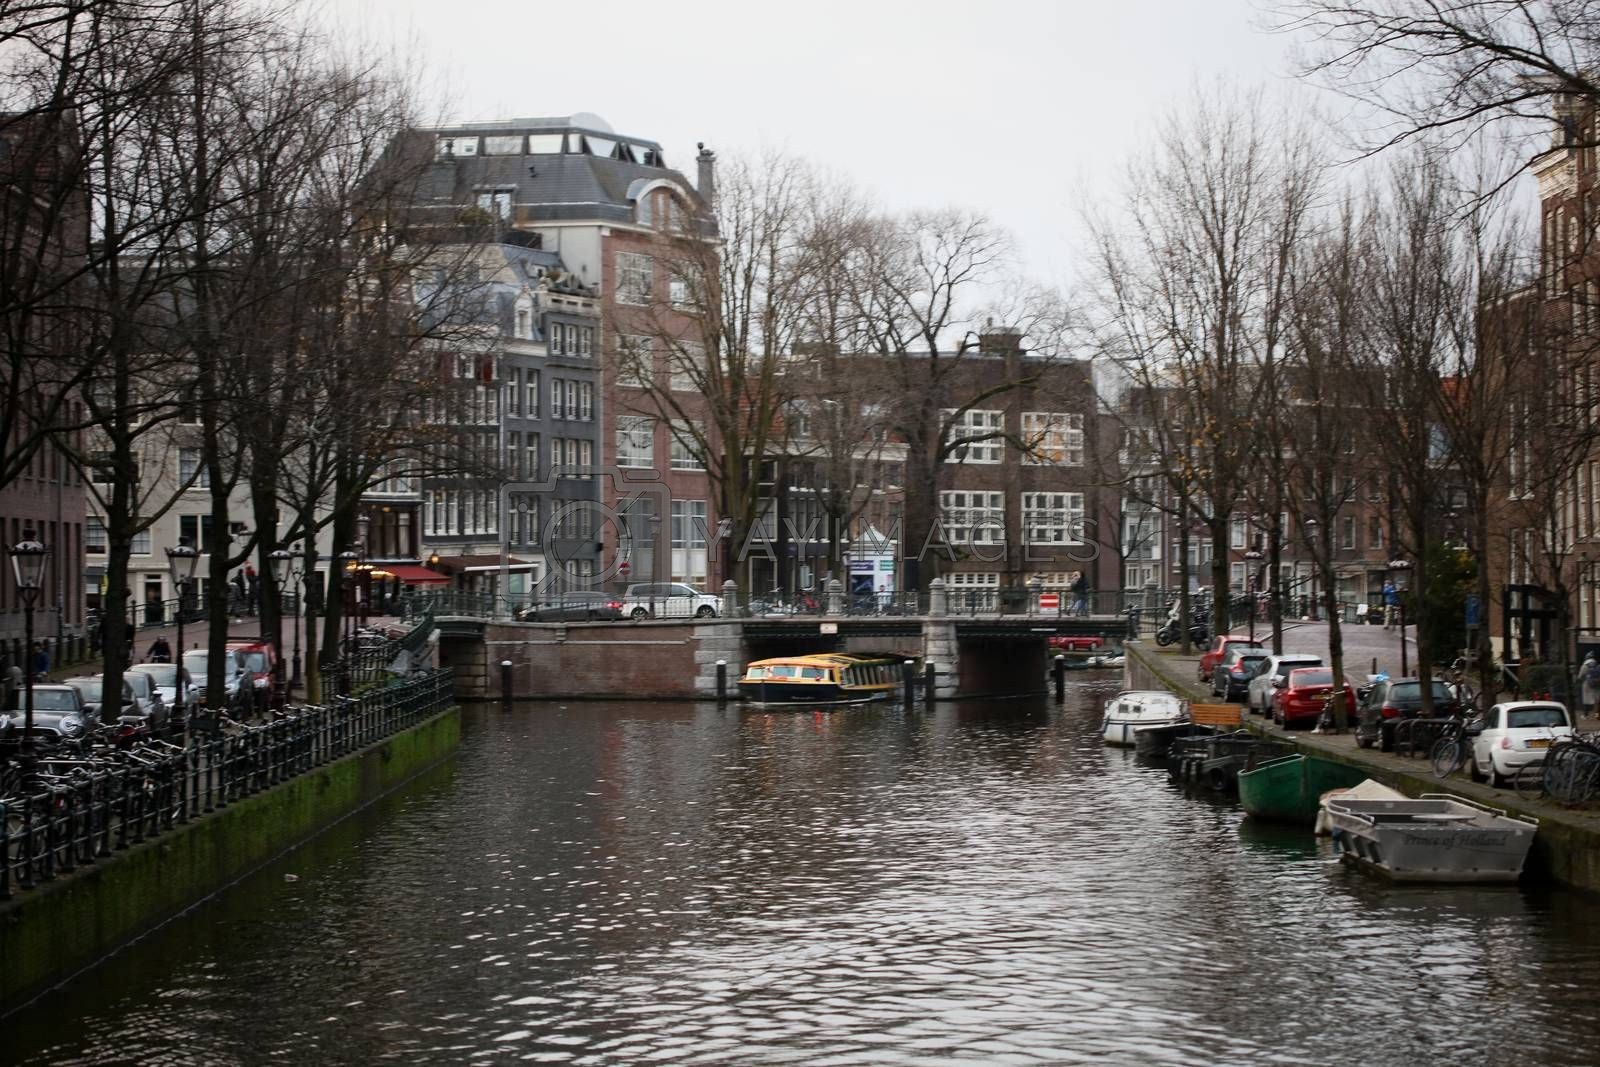 Amsterdam, Holland, Monday 2 December 2019 canal view background high quality